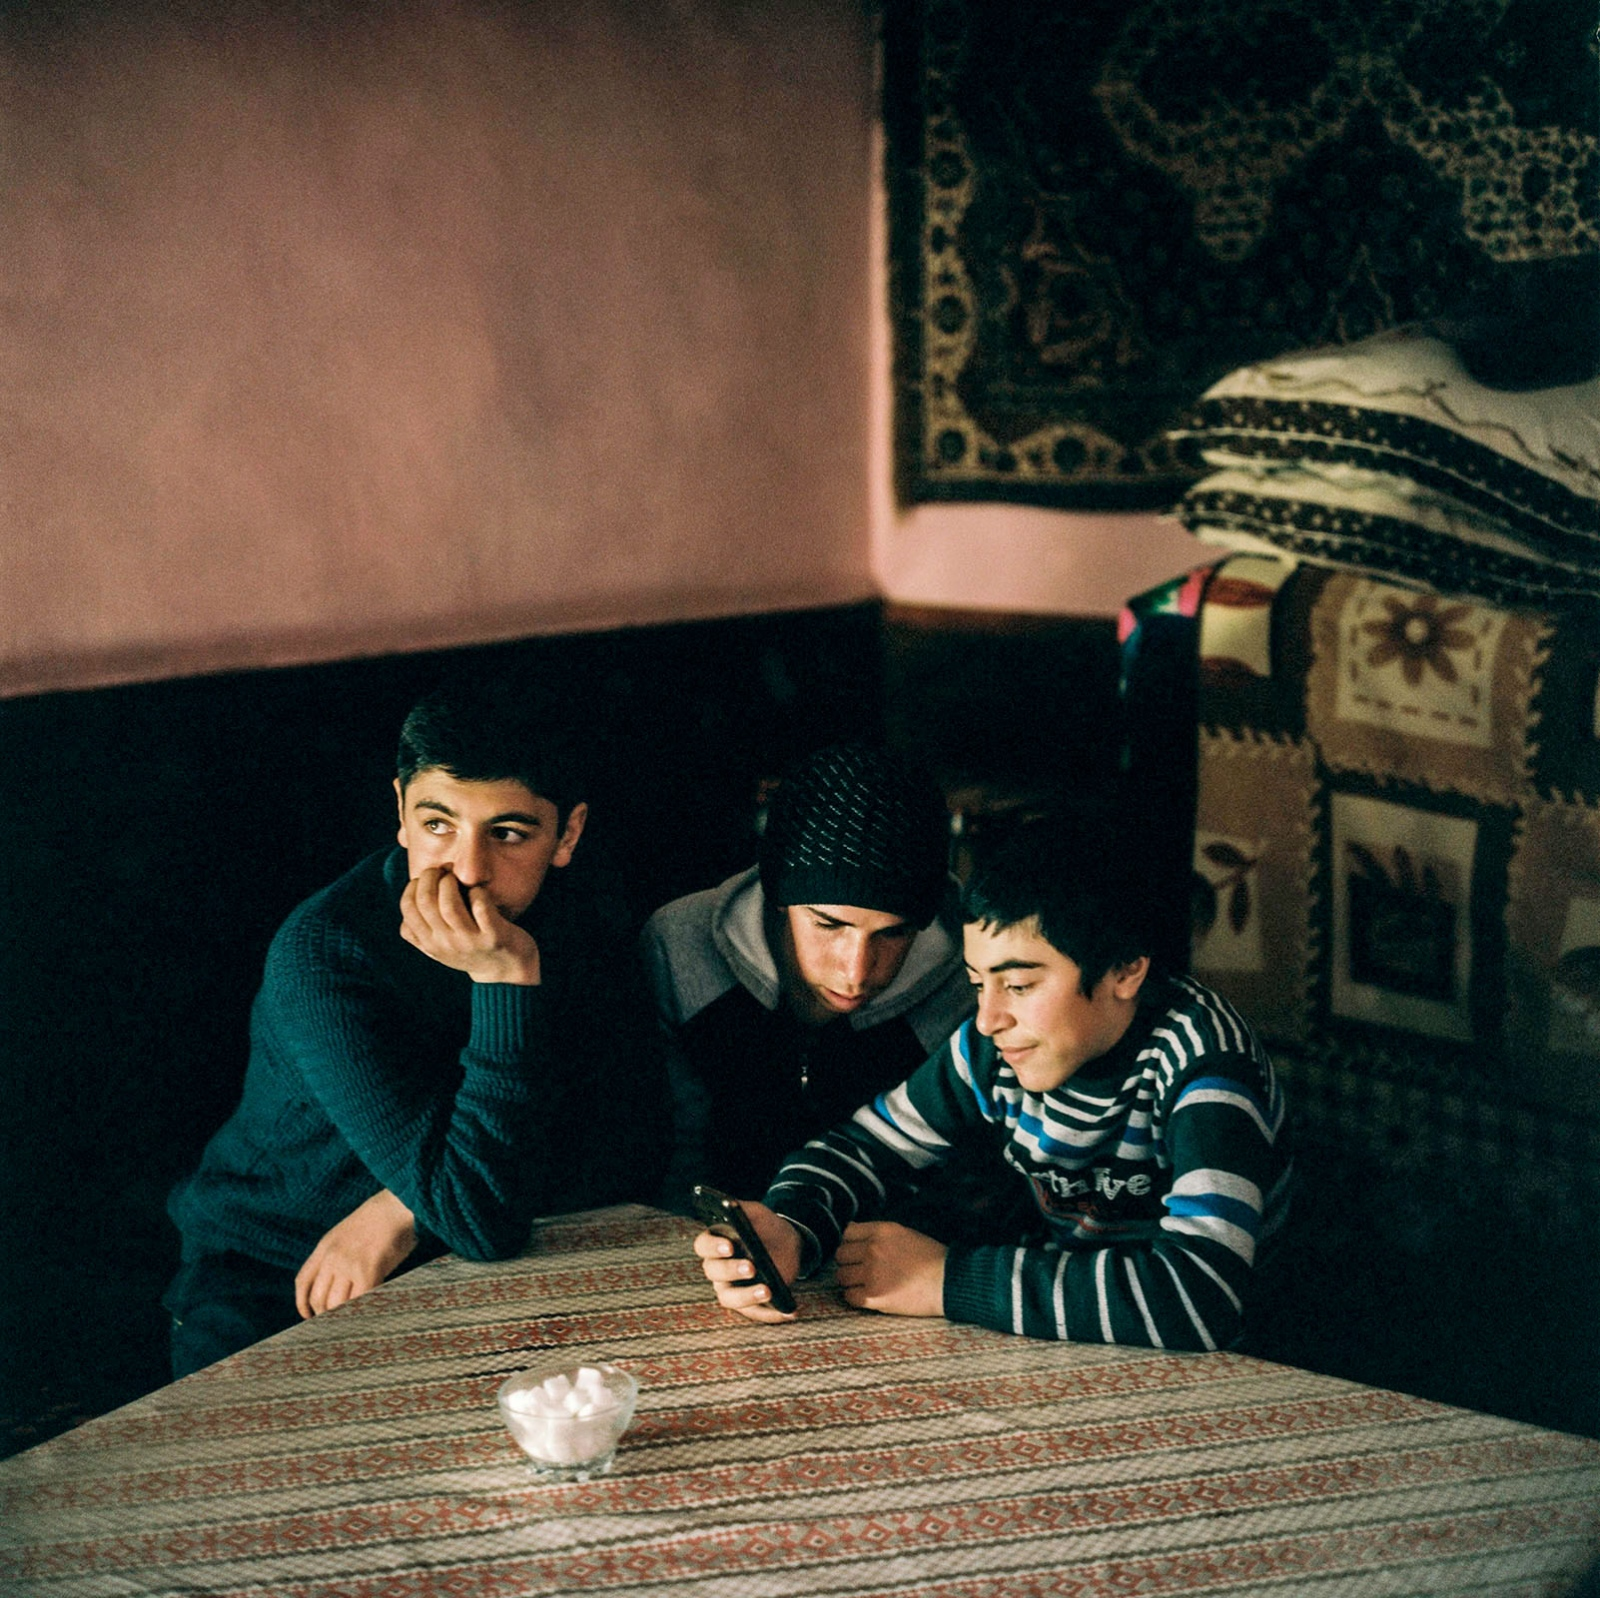 Brothers Samir and Izzet at home. More youth is using smart phones in Khanaliq, the village has not had a phone connection up until 2007. Khinaliq, Azerbaijan. 2018